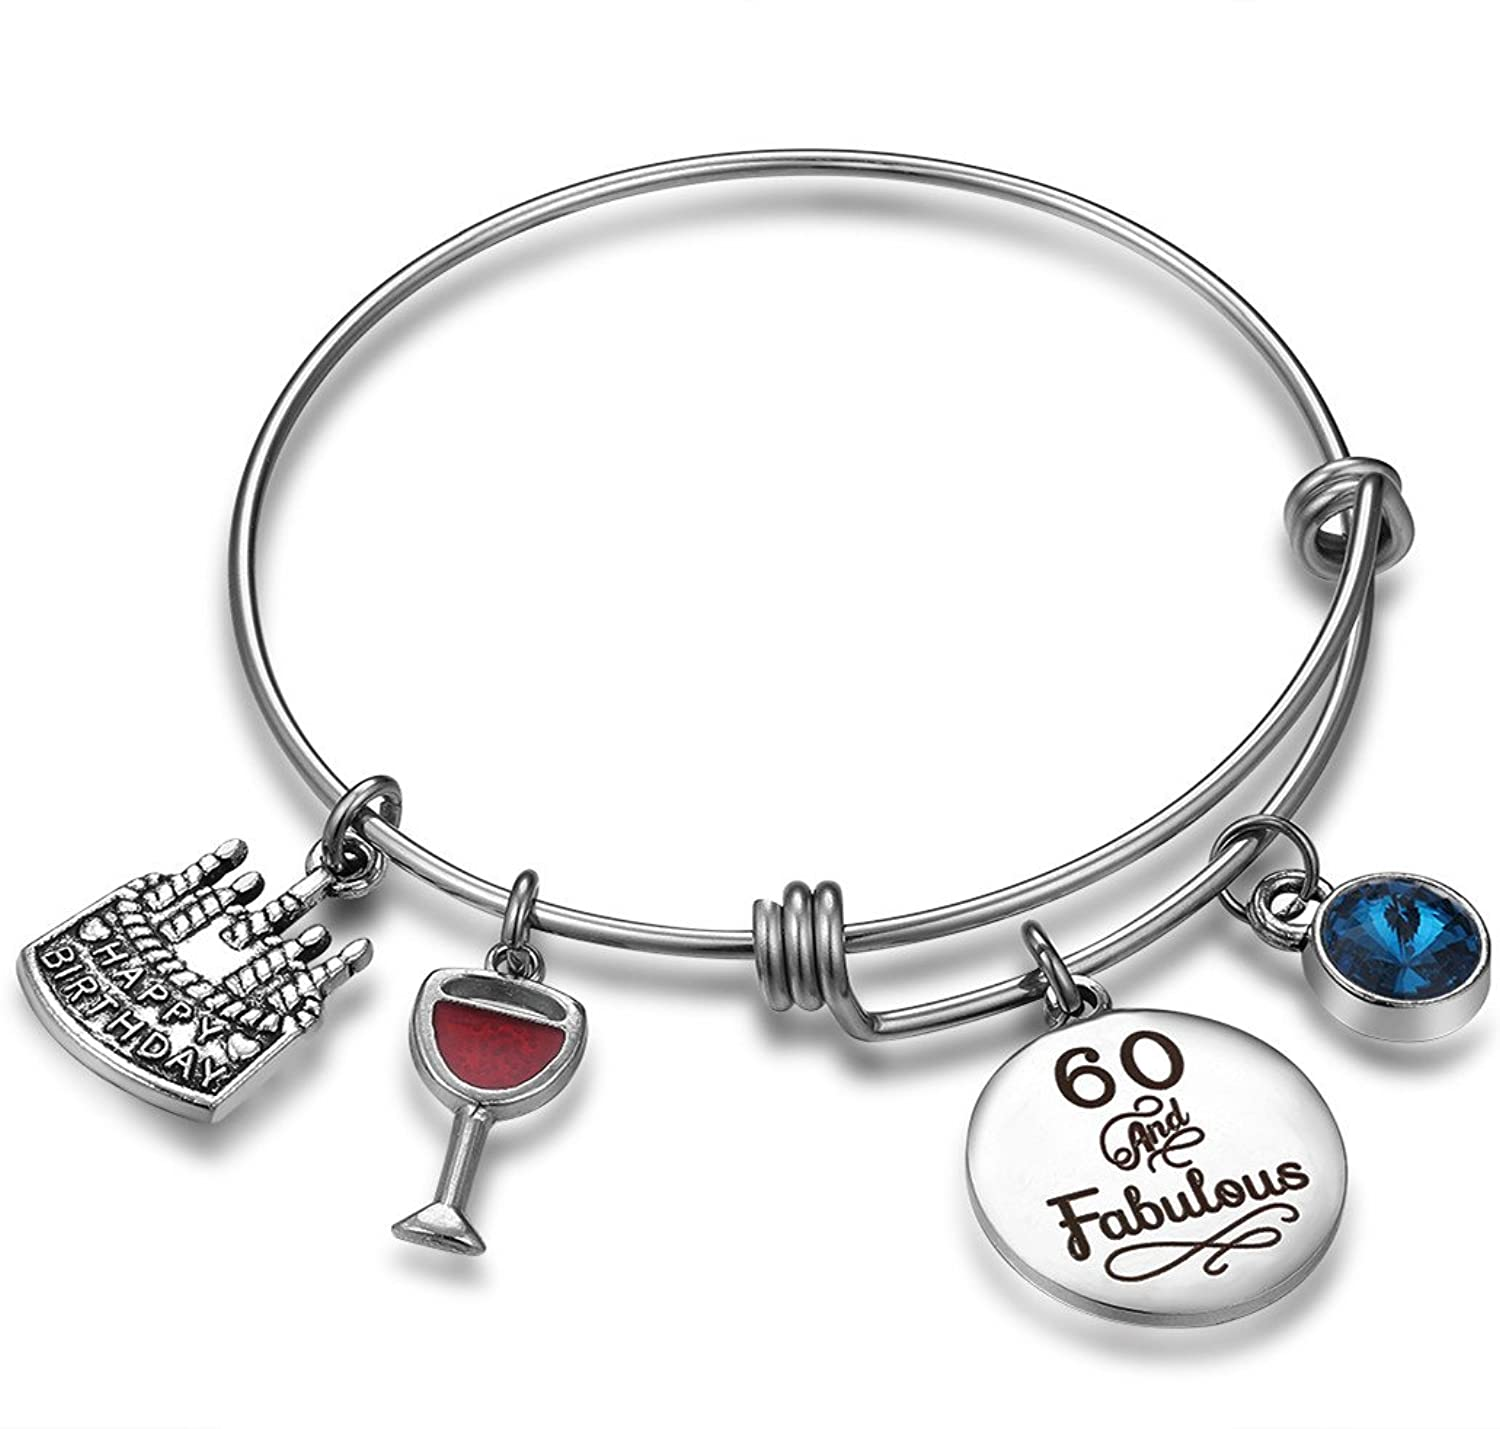 Birthday Gifts For Her Expandable Bangle Bracelet W Birthstone Charm Women Girls Best Friend 60th